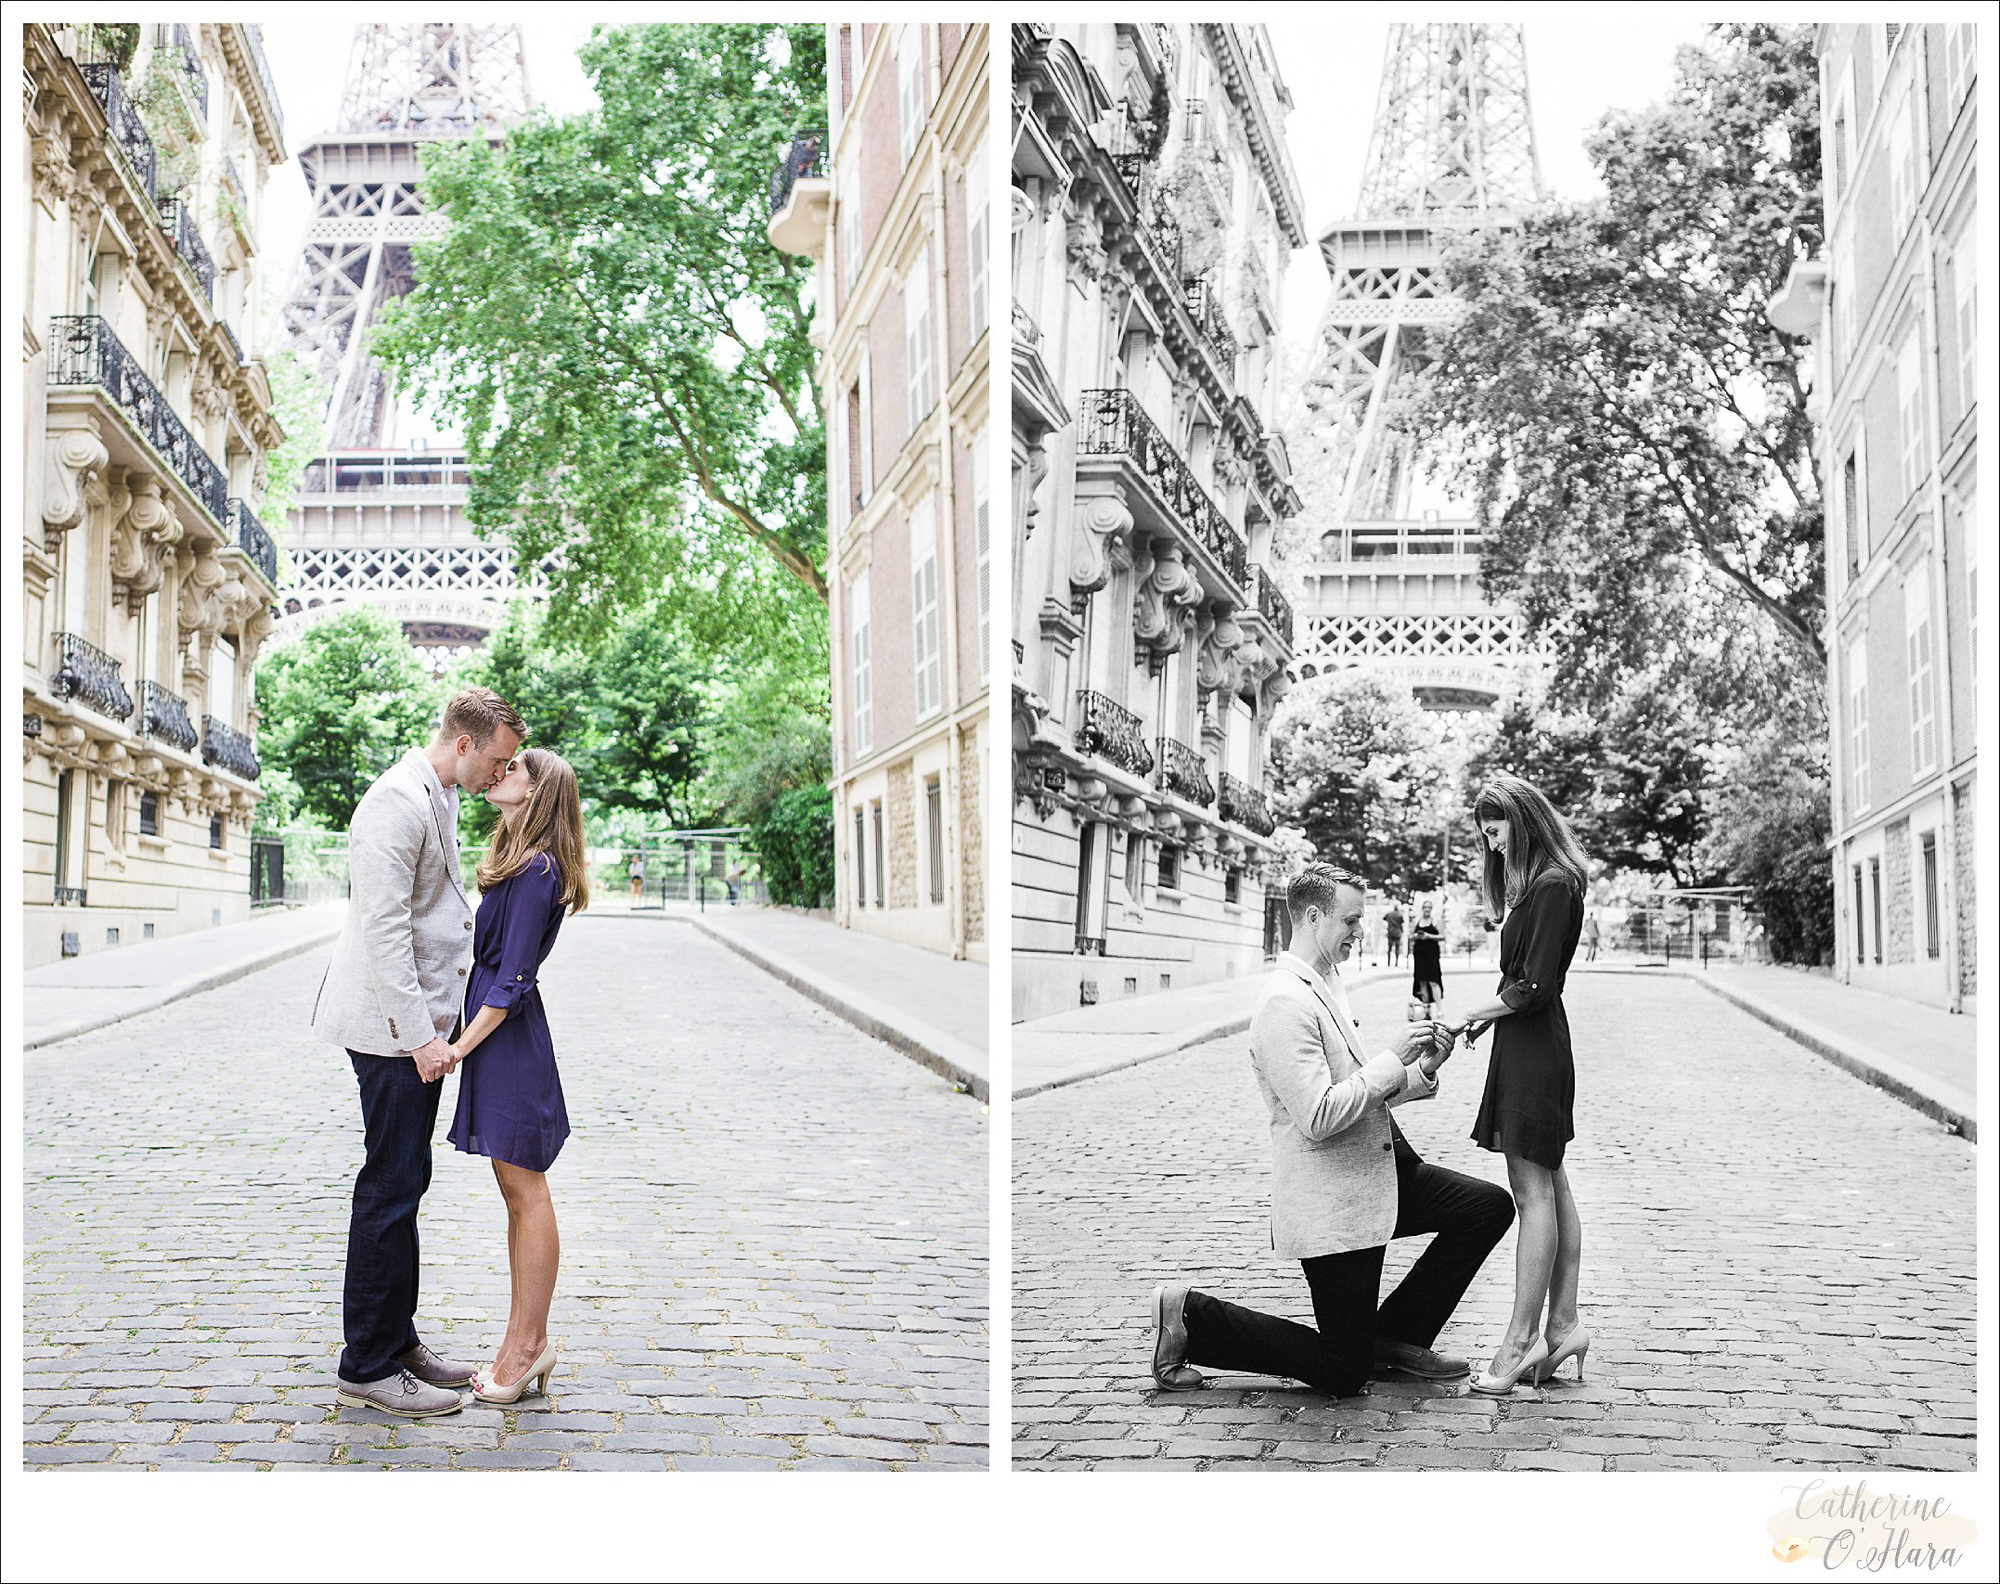 surprise proposal engagement photographer paris france-02.jpg